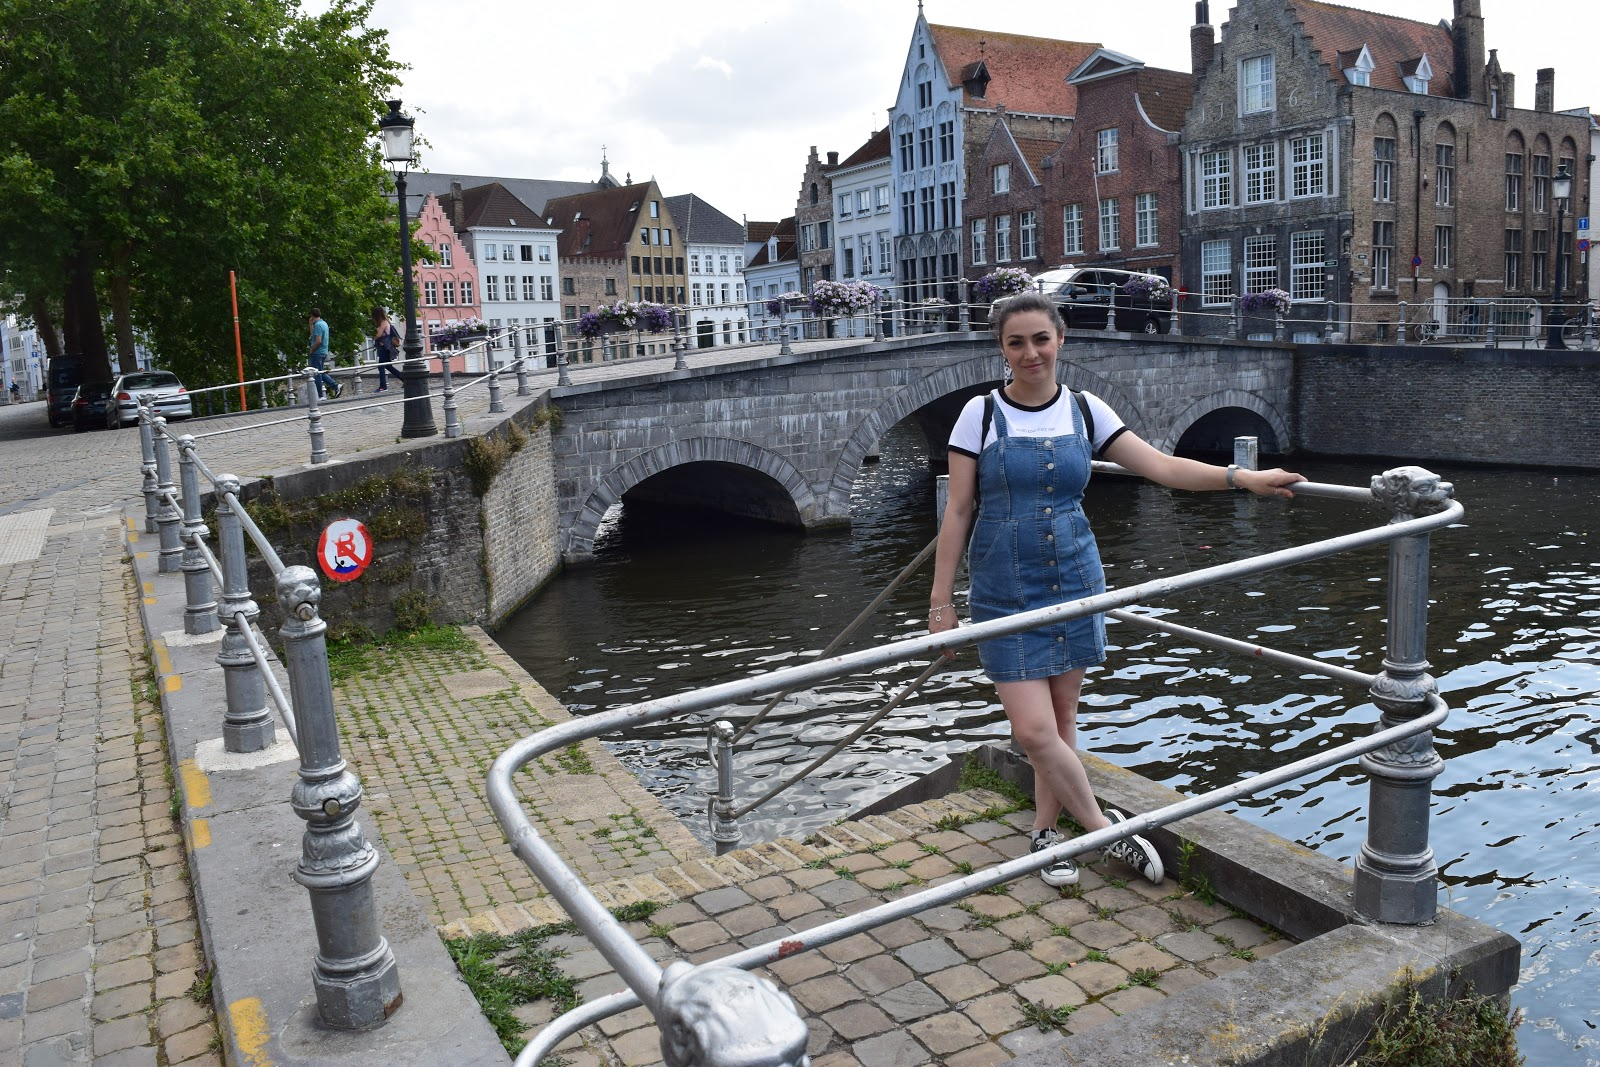 Me standing in front of a canal in Bruges. There is a bridge in the background and houses along the sides. There is a tree on the right and cars driving over the bridge. I am holding the silver banister wearing a blue button down denim dress and a white t-shirt with black edging. I am wearing black converse trainers on my feet.